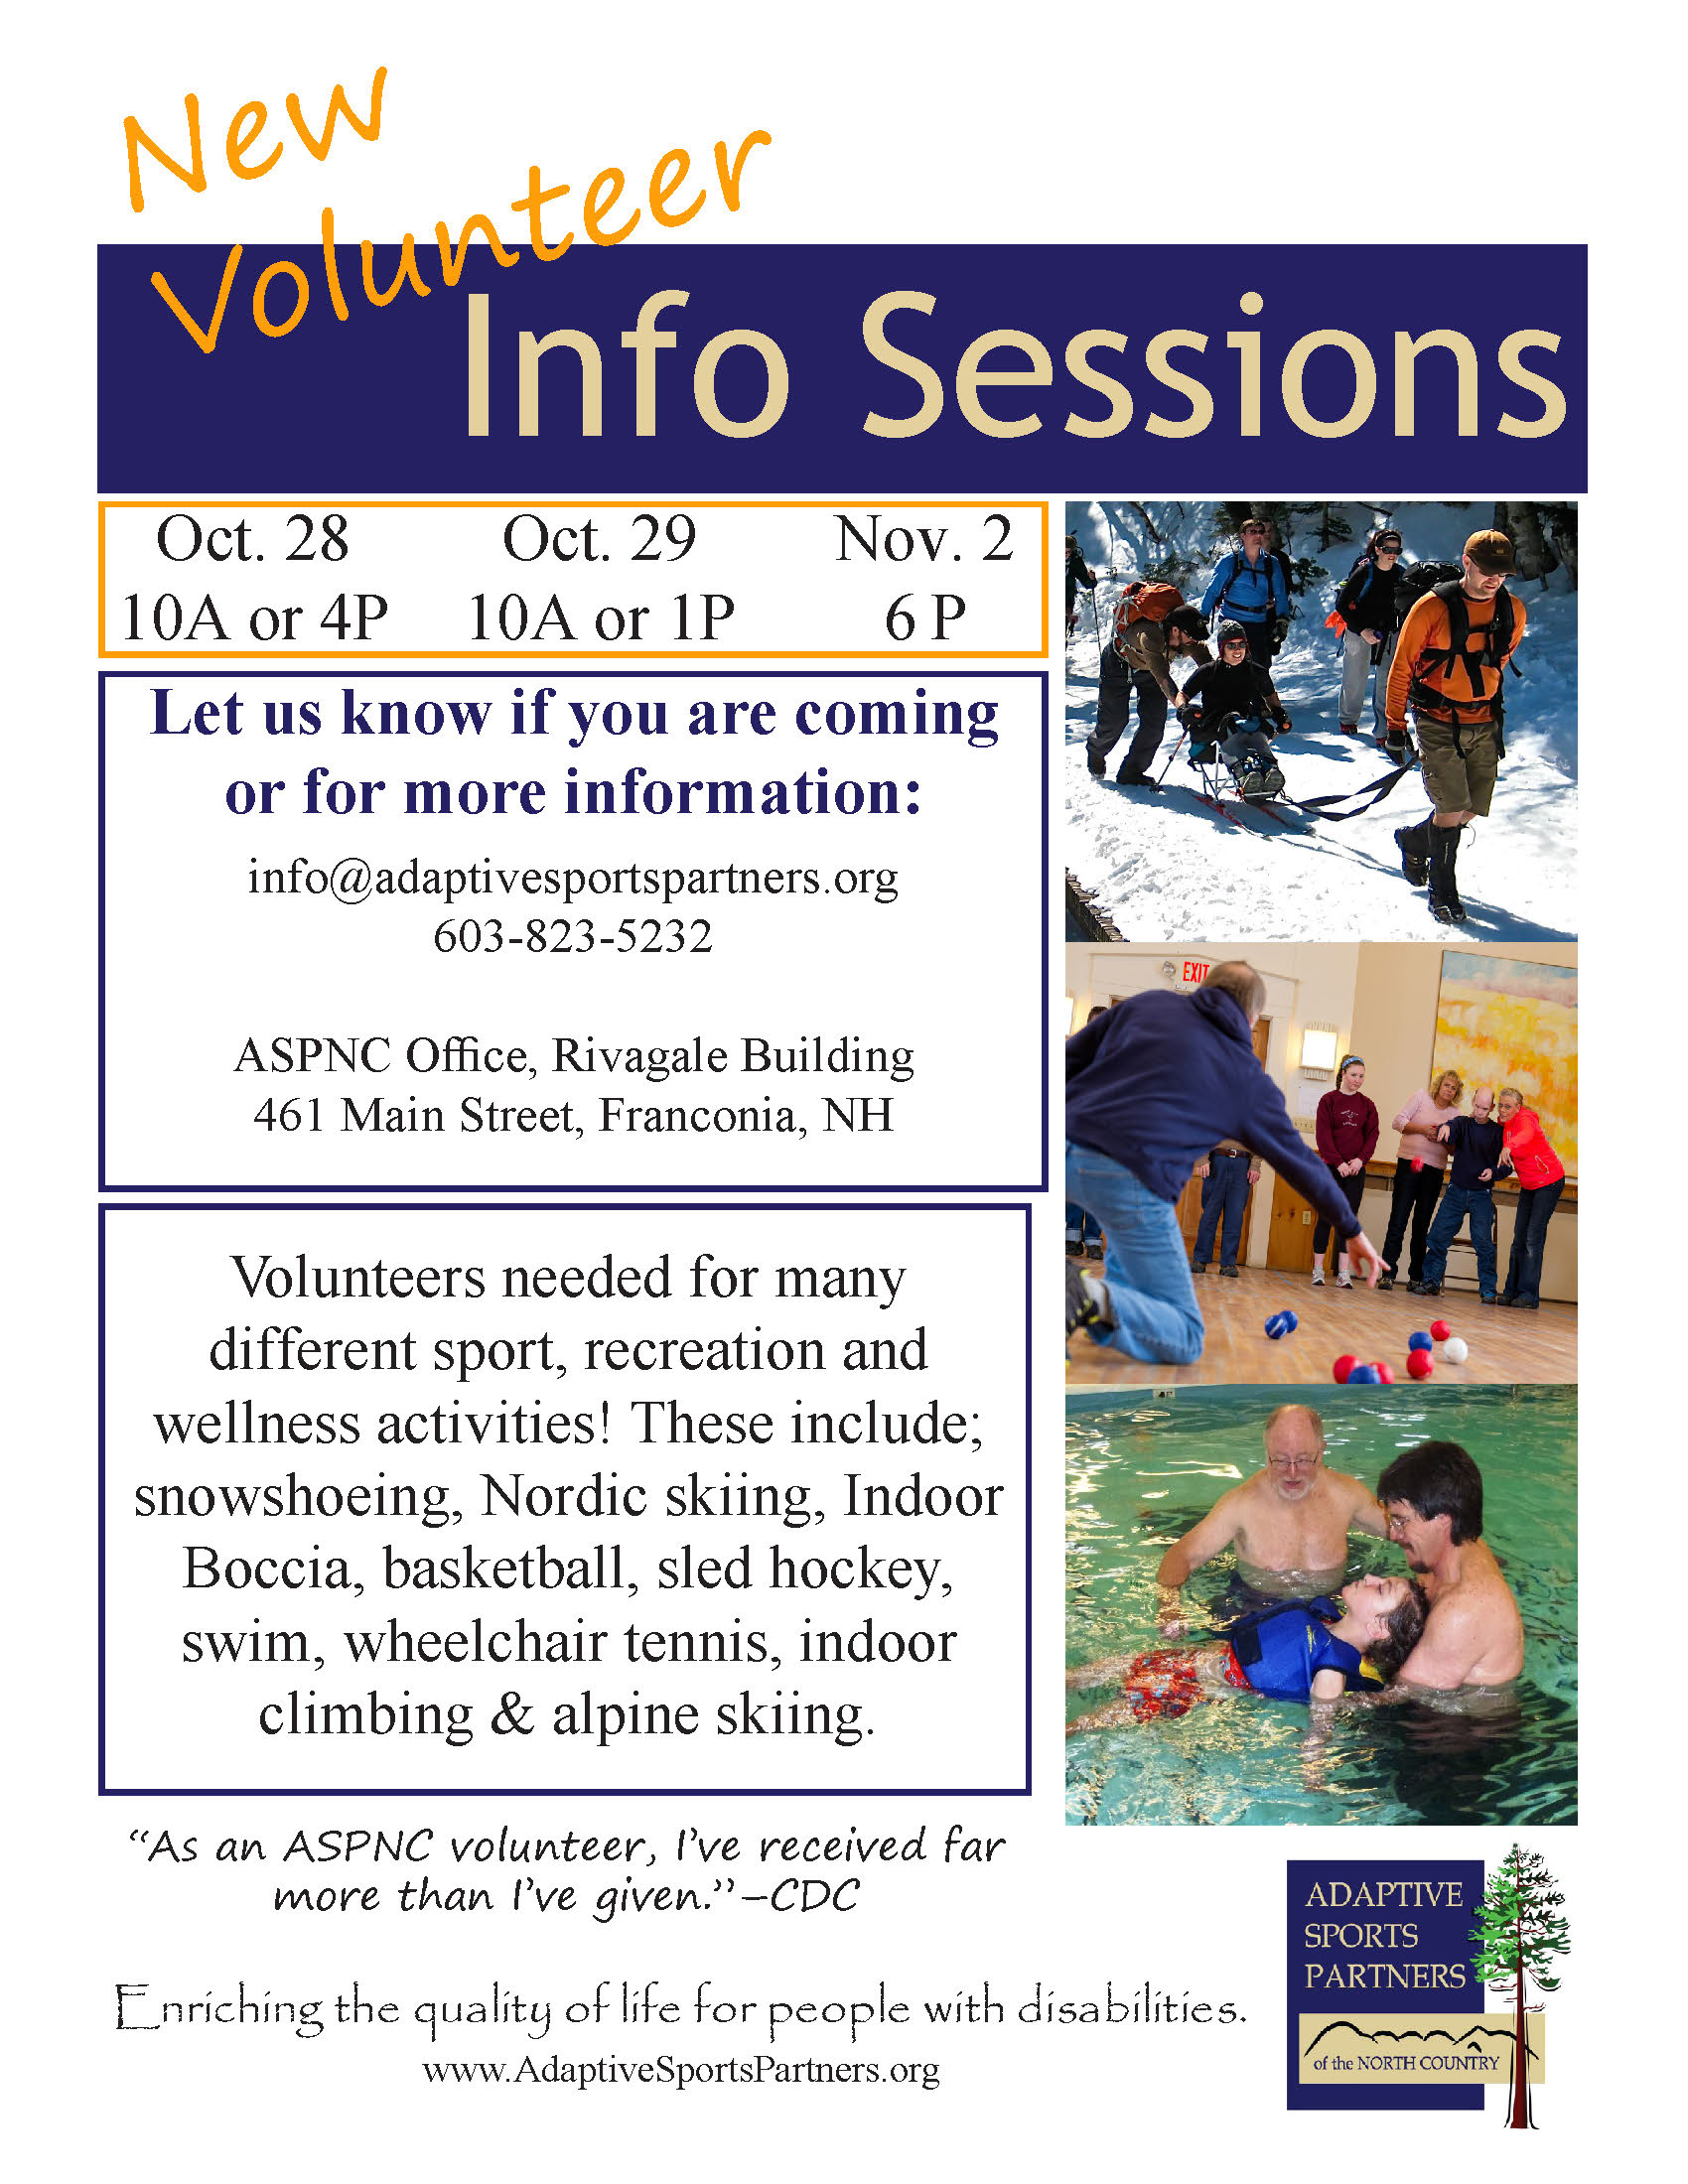 Volunteers needed for many different Sport, recreation, and wellness activities. Oct 28 10 and 4, Oct 29 10 and 1, Nov 2 6